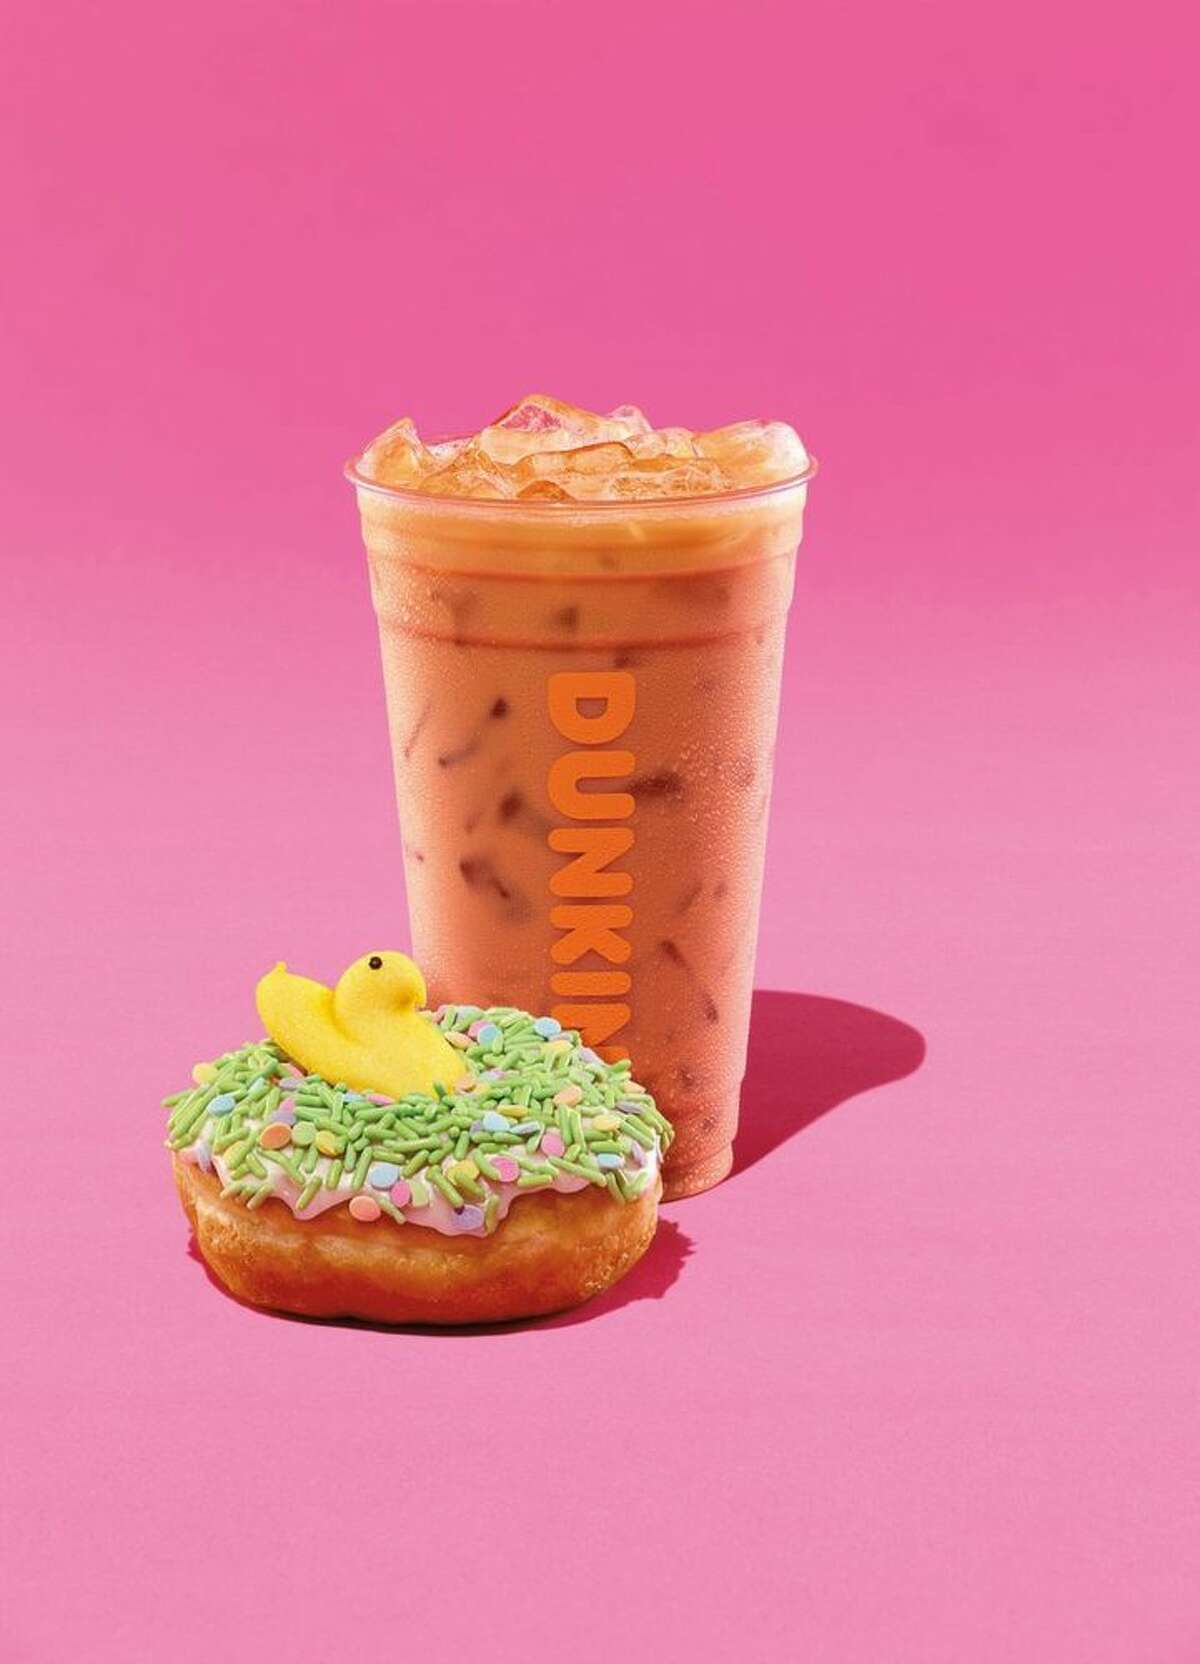 Dunkin' restaurants are adding marshmallow Peeps to coffee and doughnuts this Easter season.